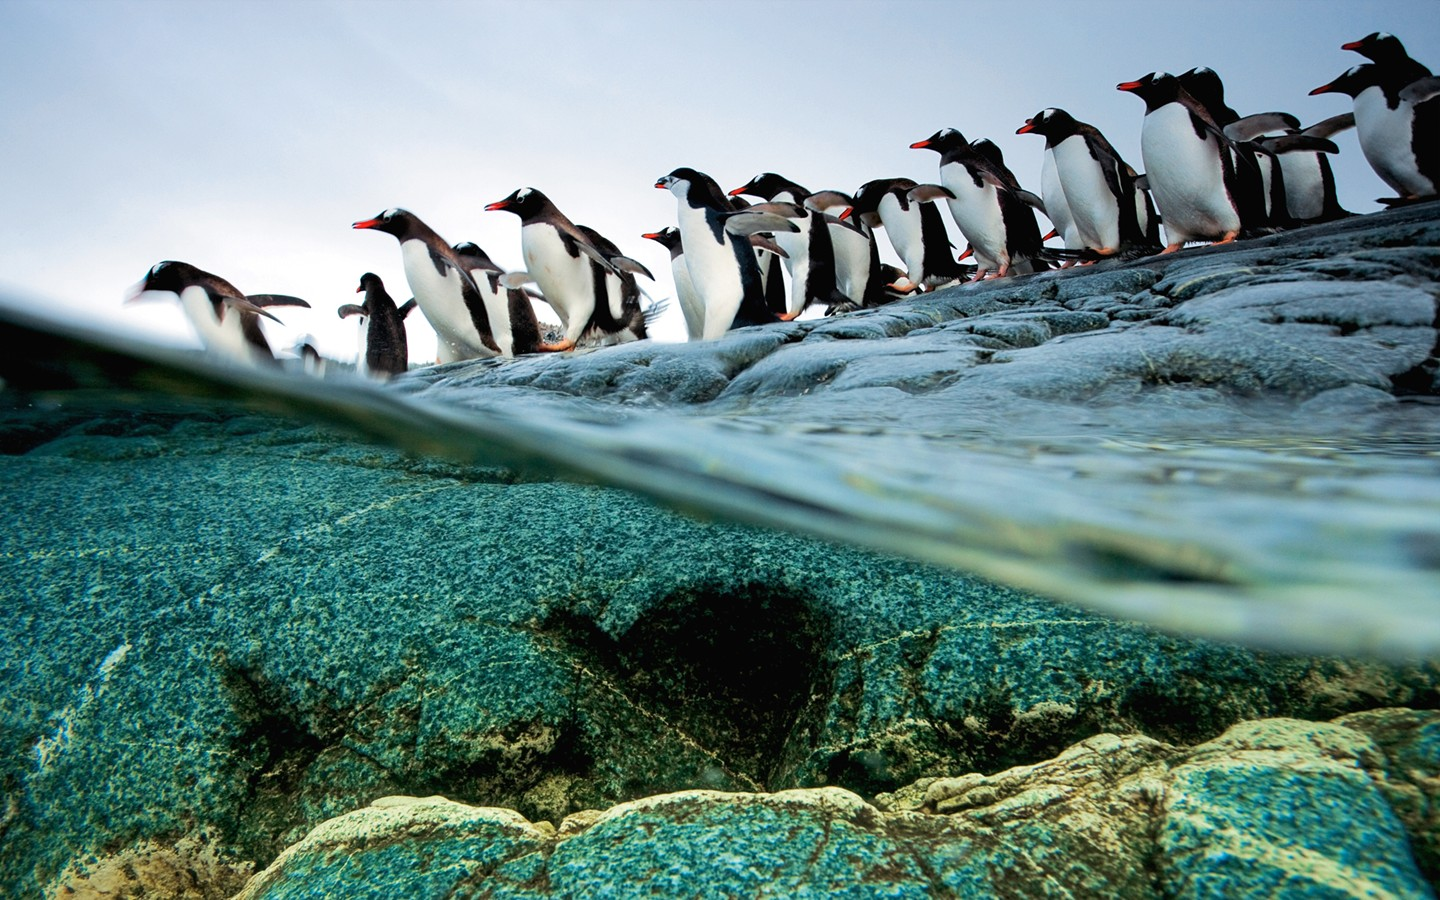 The gentoo penguins of Antarctica queuing Diving 31529   Desktop 1440x900